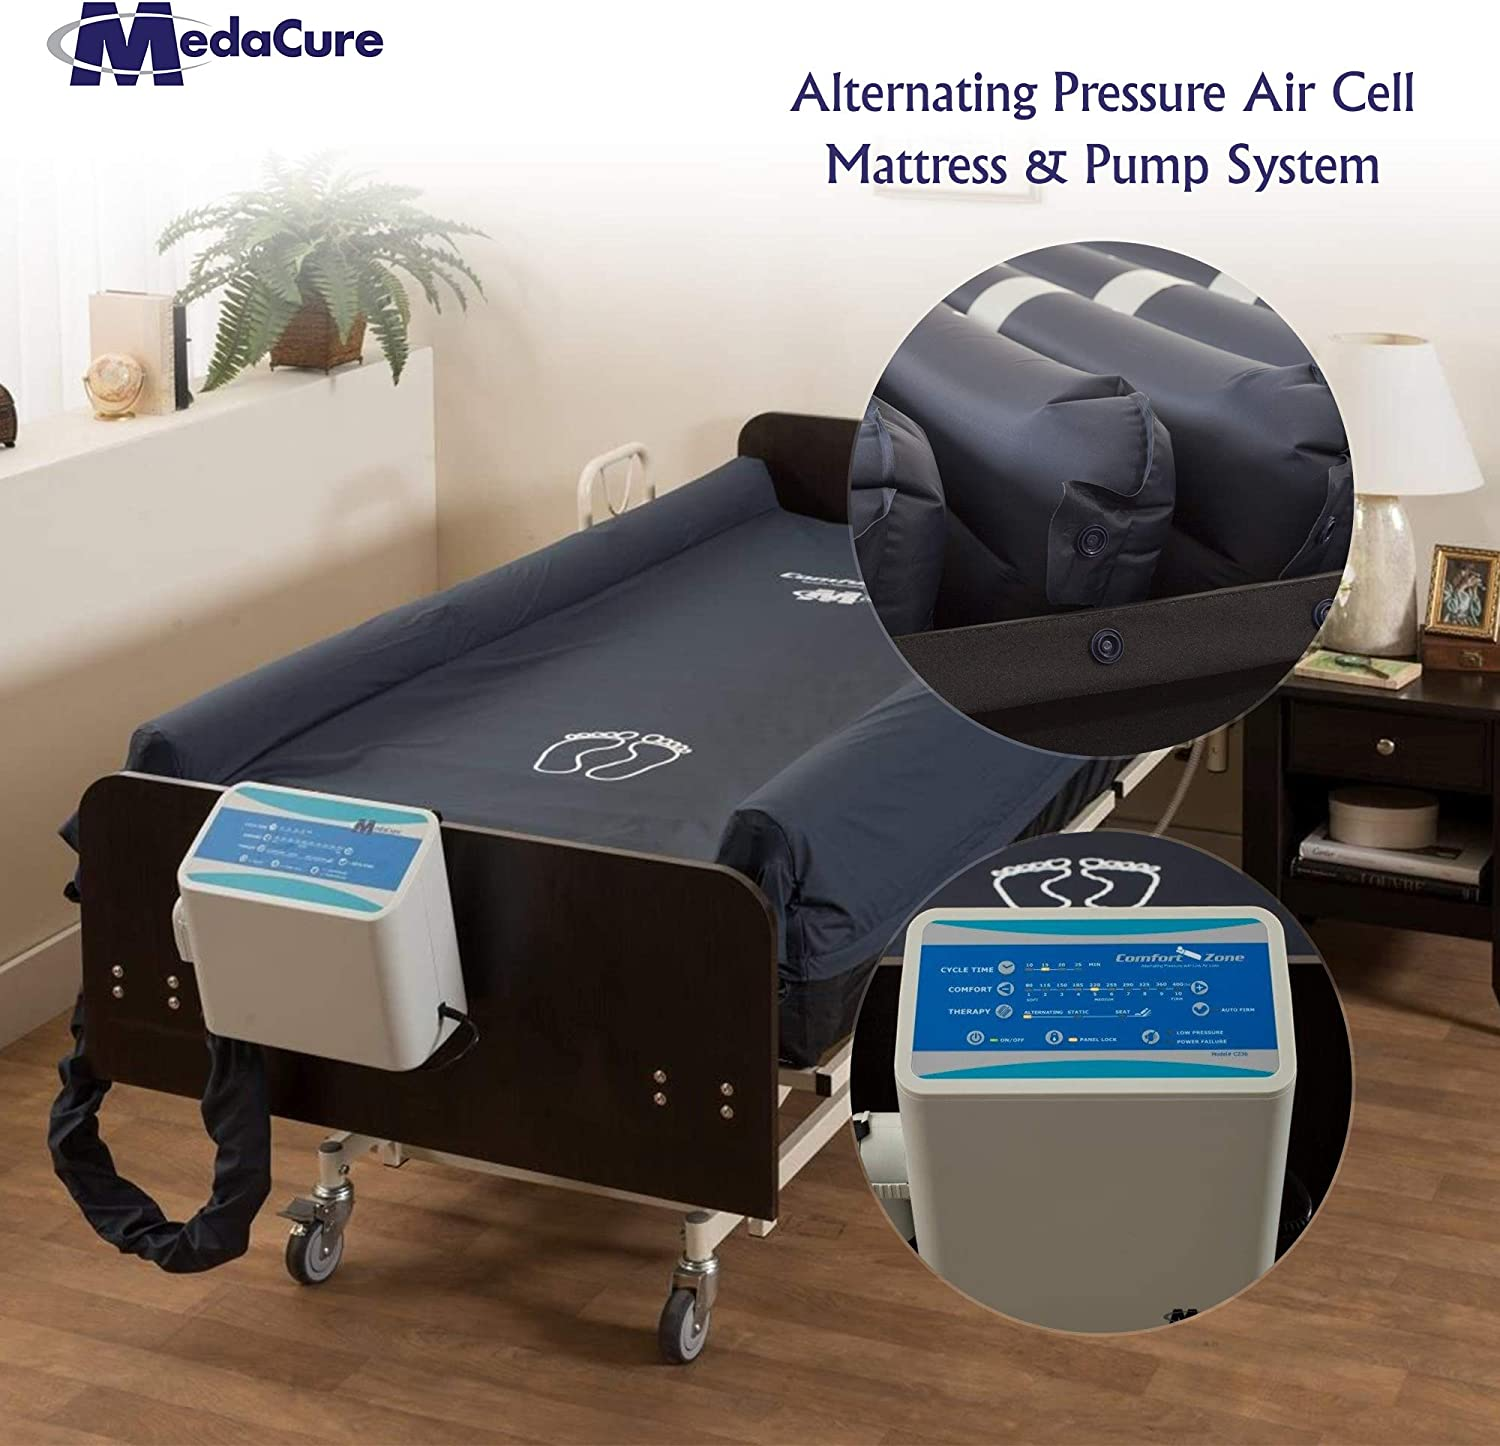 Alternating Pressure Mattress for Hospital Beds with Pump and Built in Guard Rails